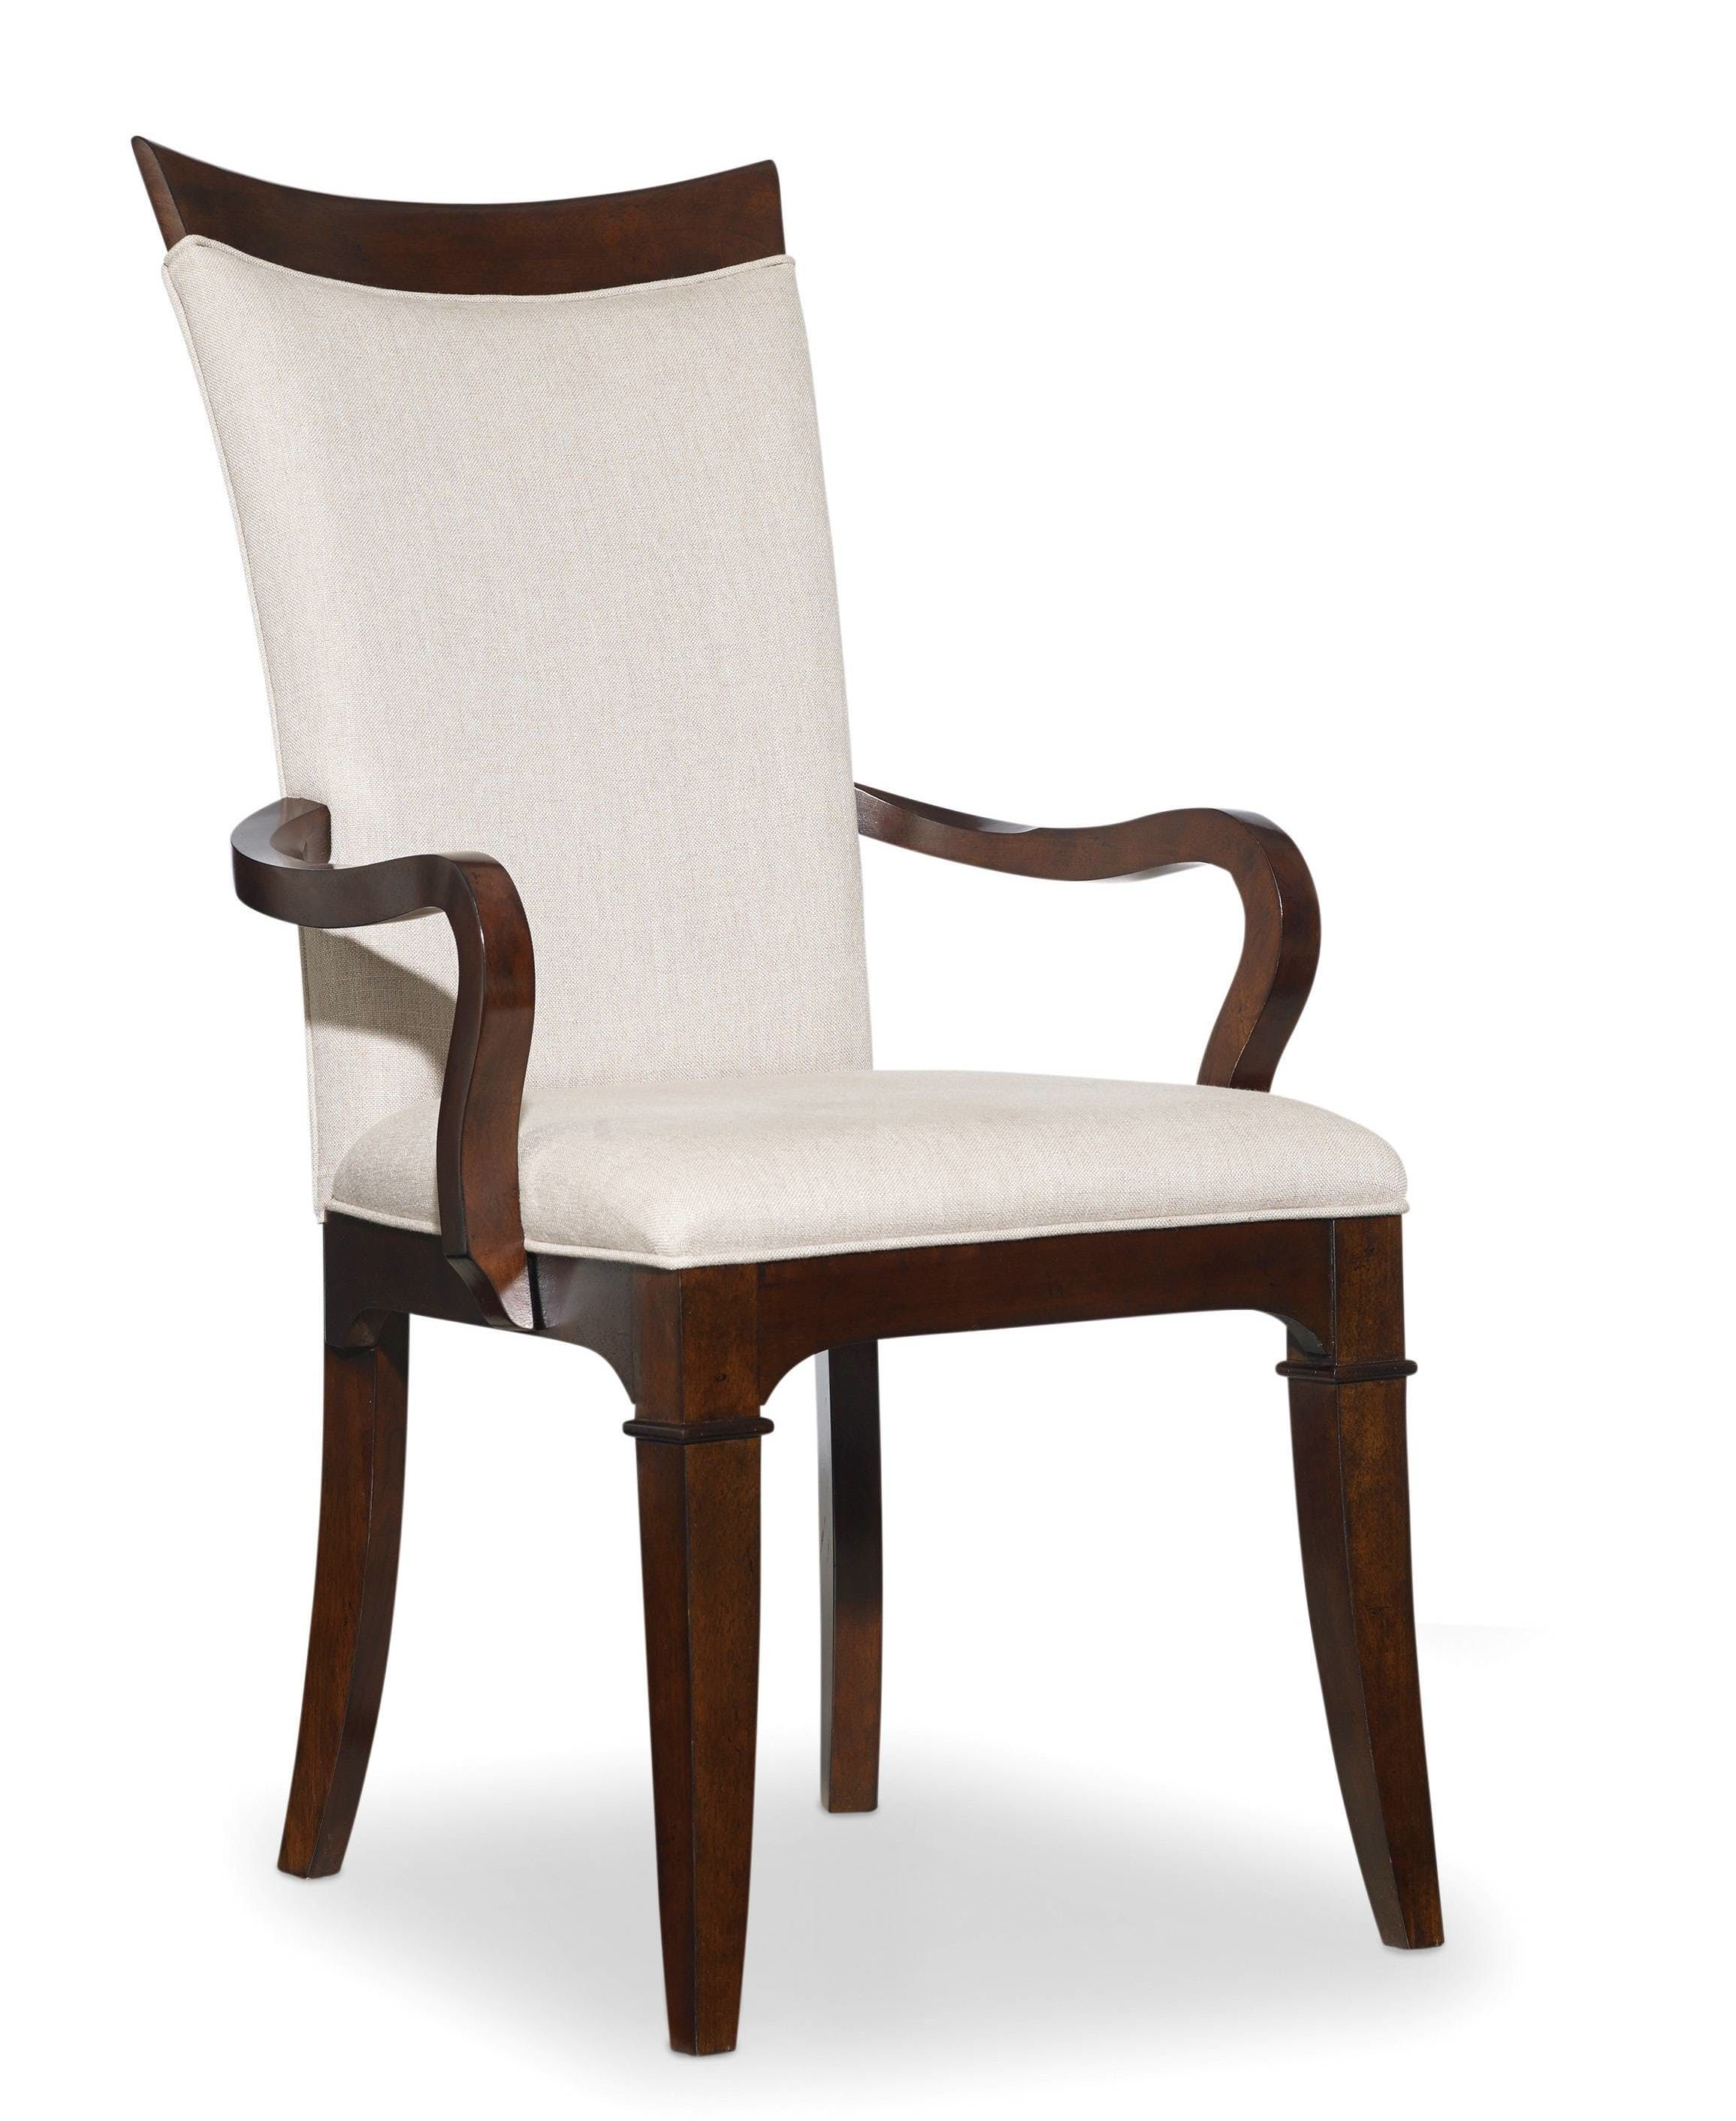 Hooker Furniture Palisade Upholstered Arm Chair 5183 75400